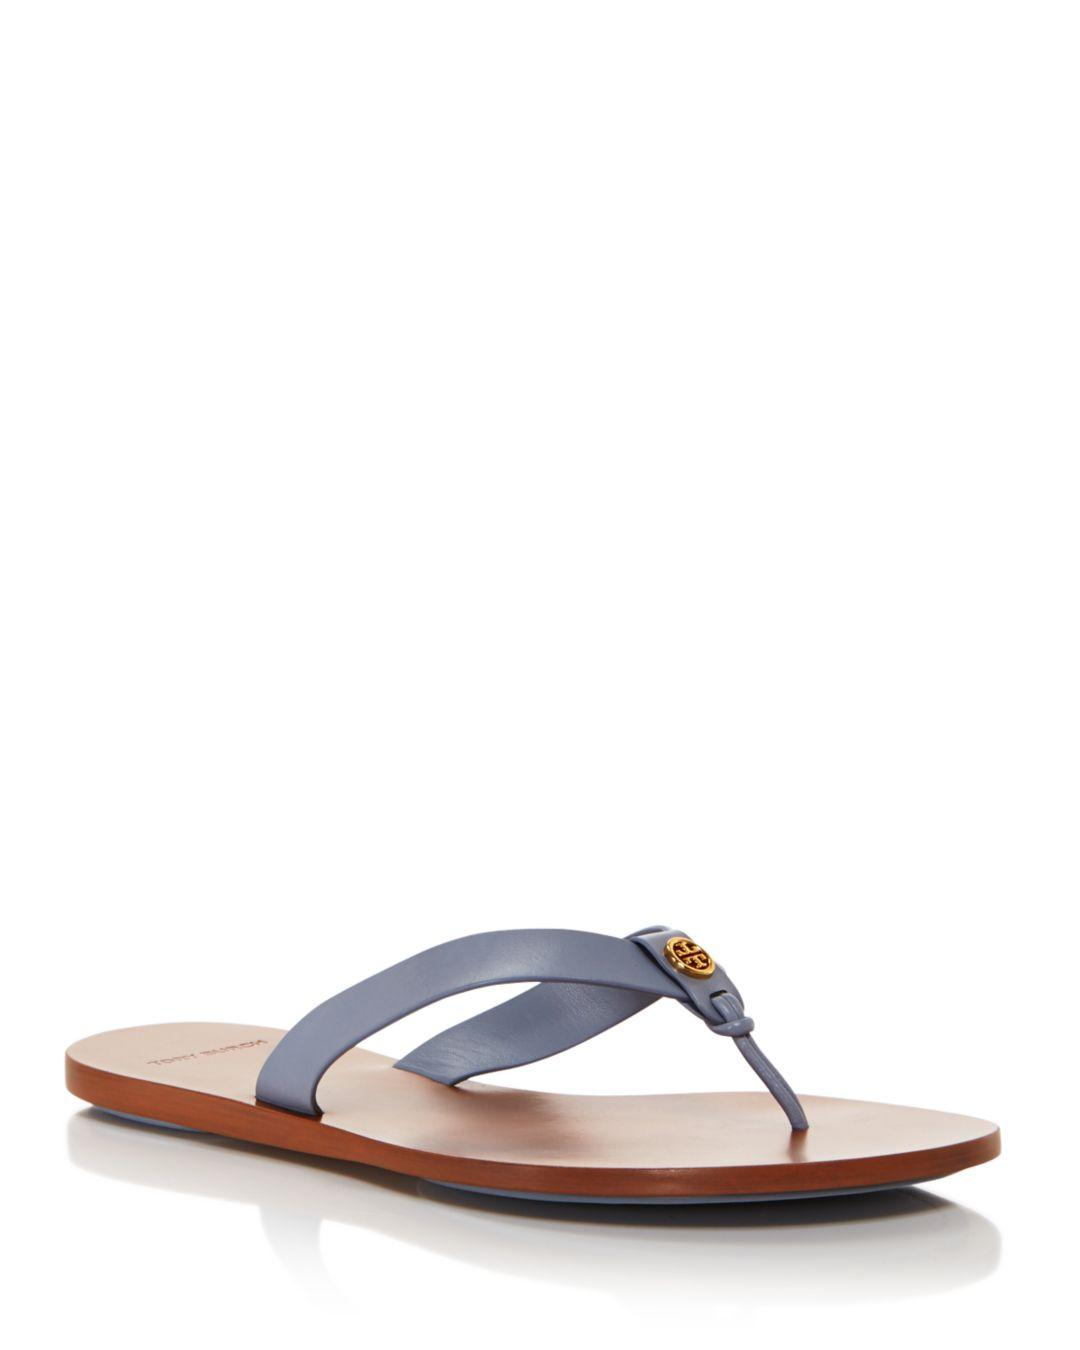 47cb41bd0660 Lyst - Tory Burch Women s Manon Leather Thong Sandals